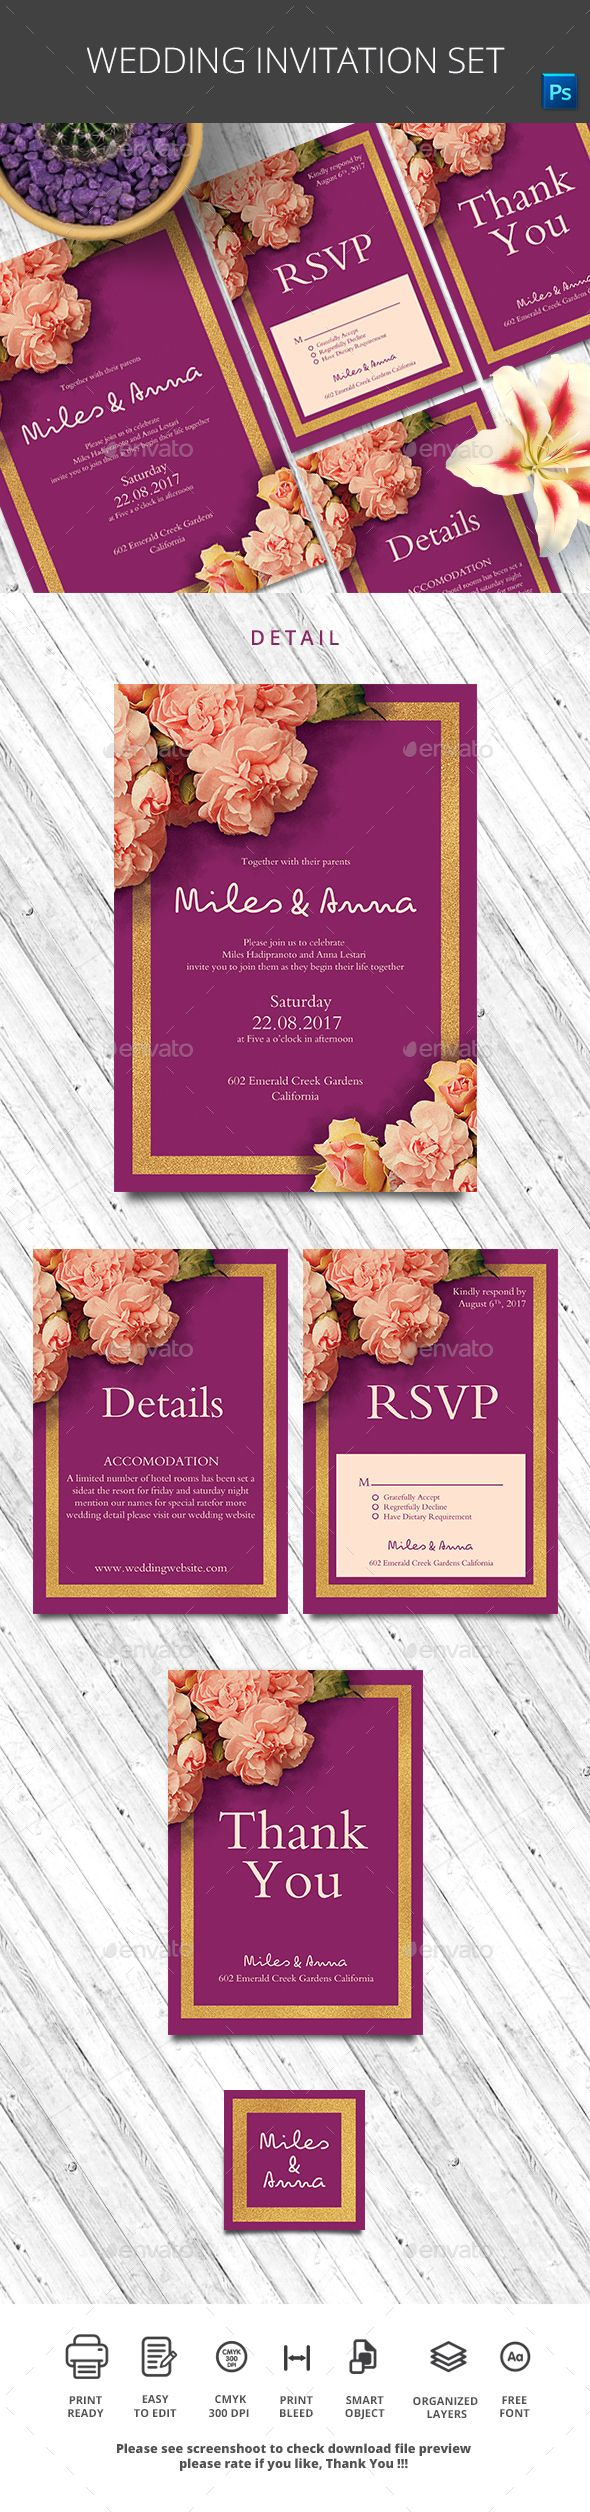 wedding invitation rsvp what does m mean%0A Wedding Invitation File Features   Wedding Invitation   inch Bleed area Wedding  RSVP     inch Bleed area